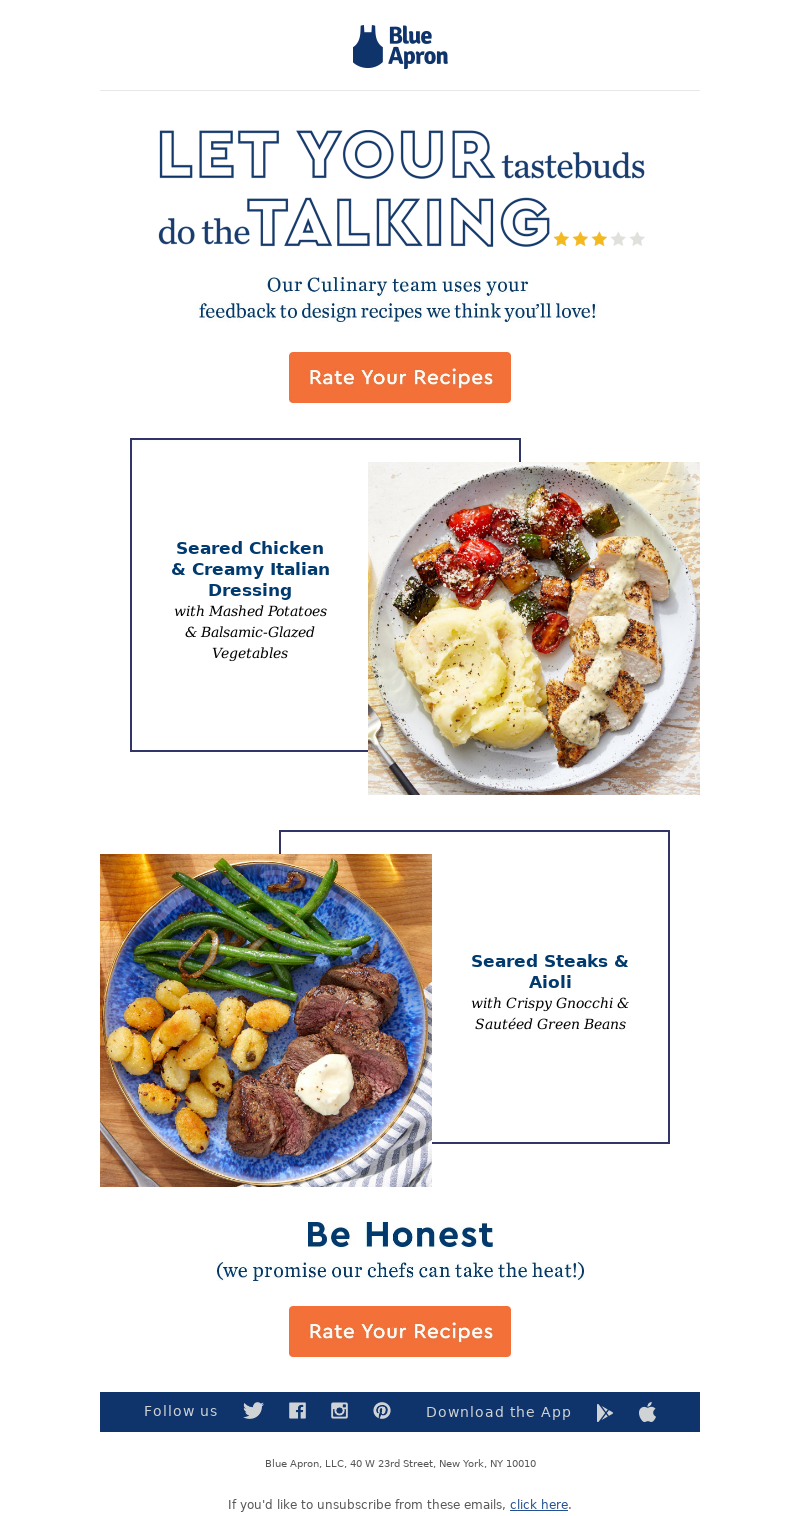 Ask for feedback email from Blue Apron